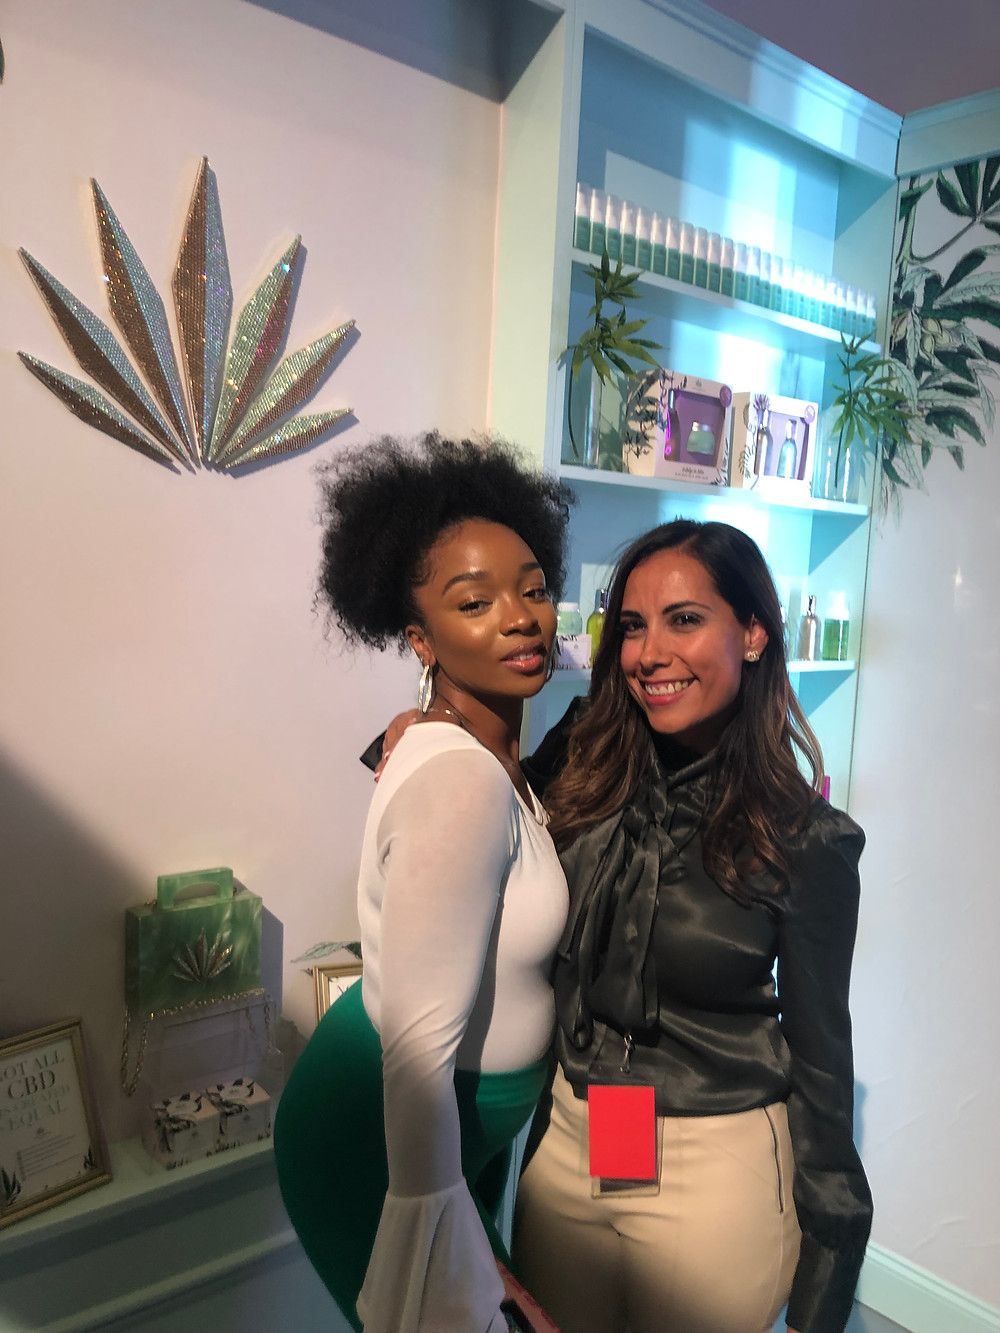 Myself and one of the owners of Natura Med. She's absolutely gorgeous. No, Im not pregnant just extremely bloated smh lol. But peep how flawless our makeup is.